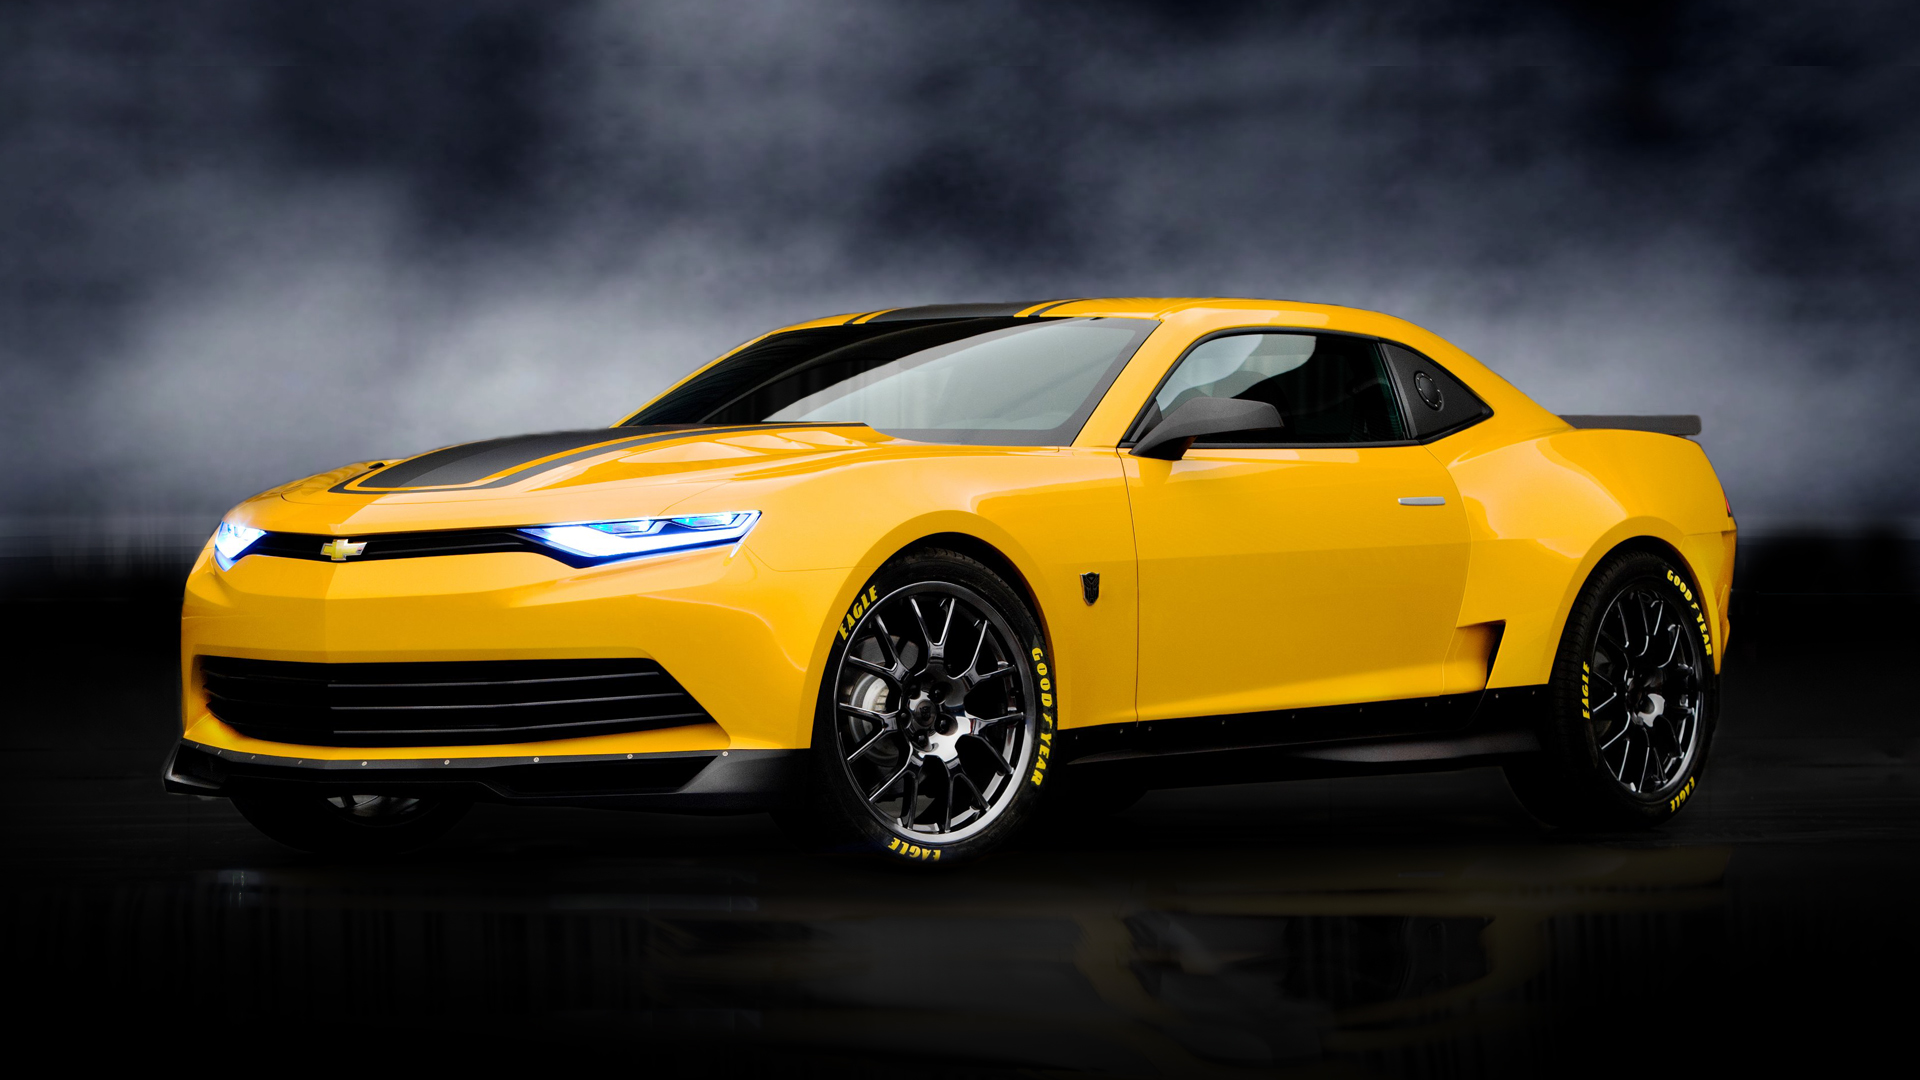 Bumblebee Camaro Concept Transformers 4 HD Wallpaper 6264 1920x1080